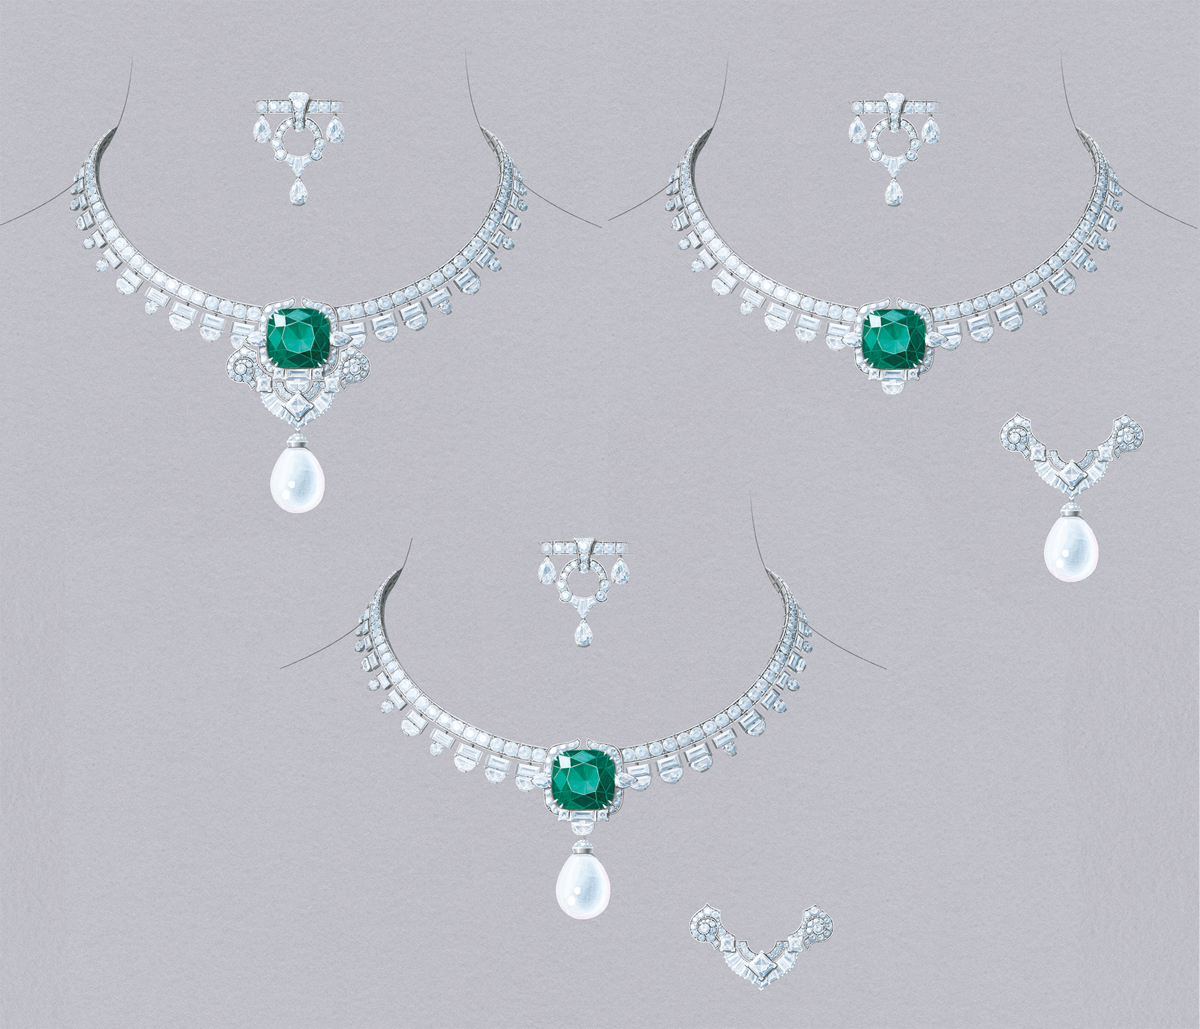 Van Cleef&Arpels Serrania necklace. White gold, platinum, round, square-cut, baguette-cut, half-moon and pear-shaped diamonds, one natural white pearl of 26.82 carats, one cushion-cut emerald of 26.43 carats (Colombia). Detachable clip and natural pearl